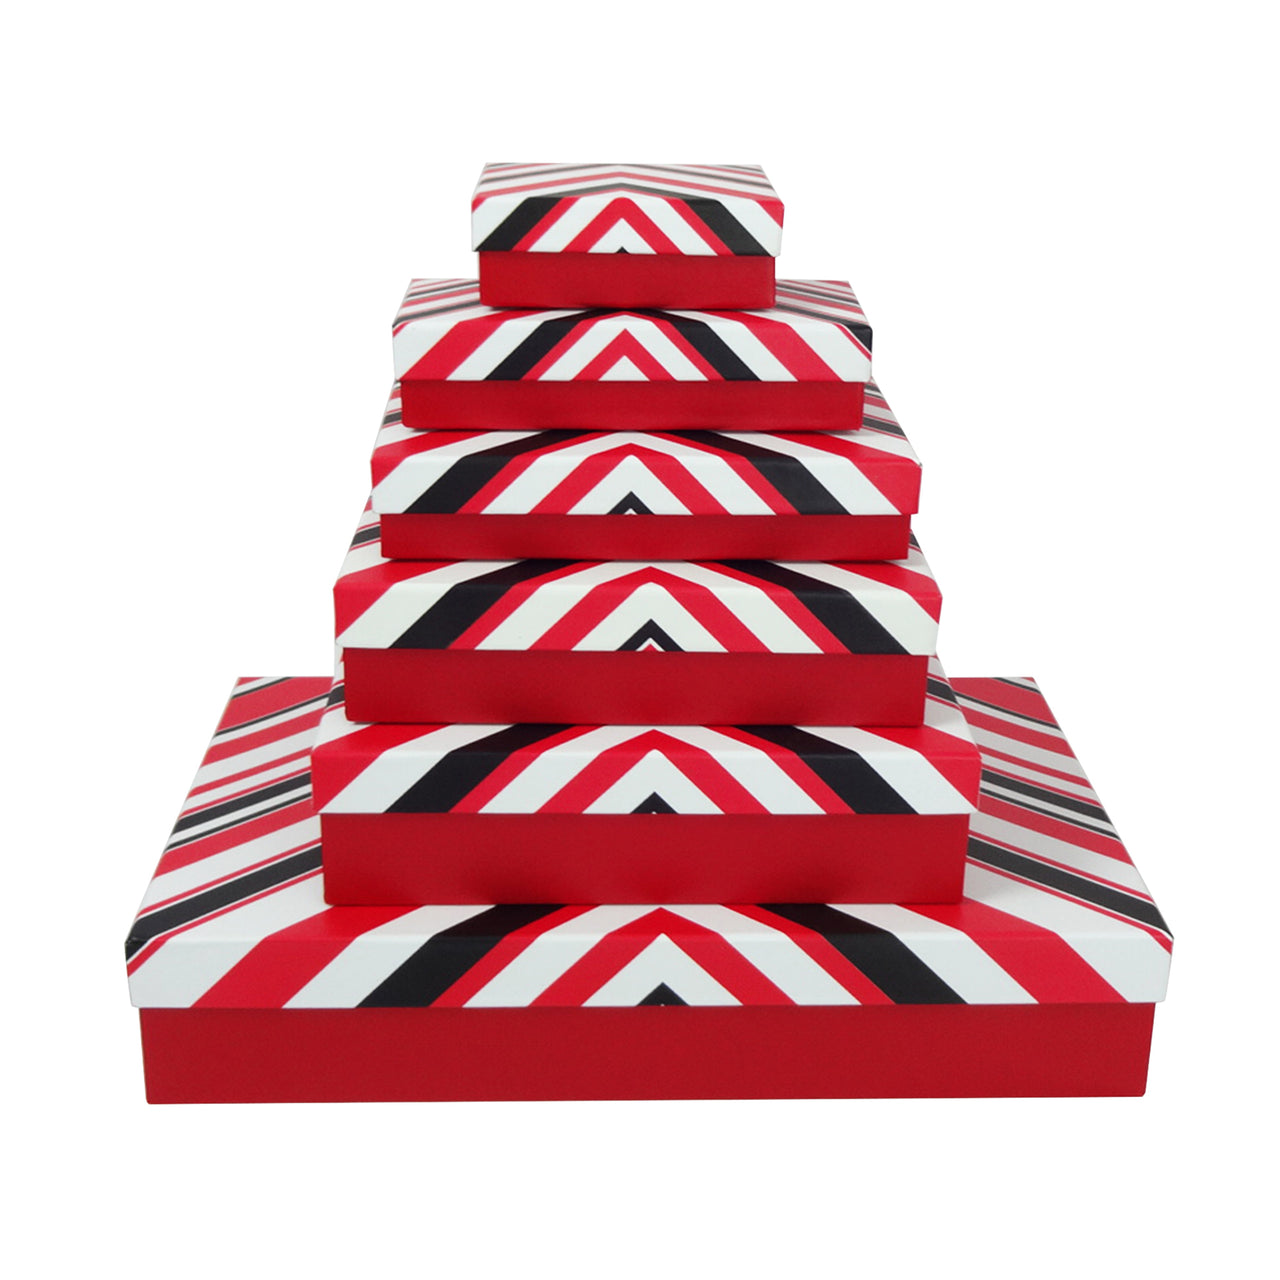 Red Triangular Stripes Gift Box - Set Of 6